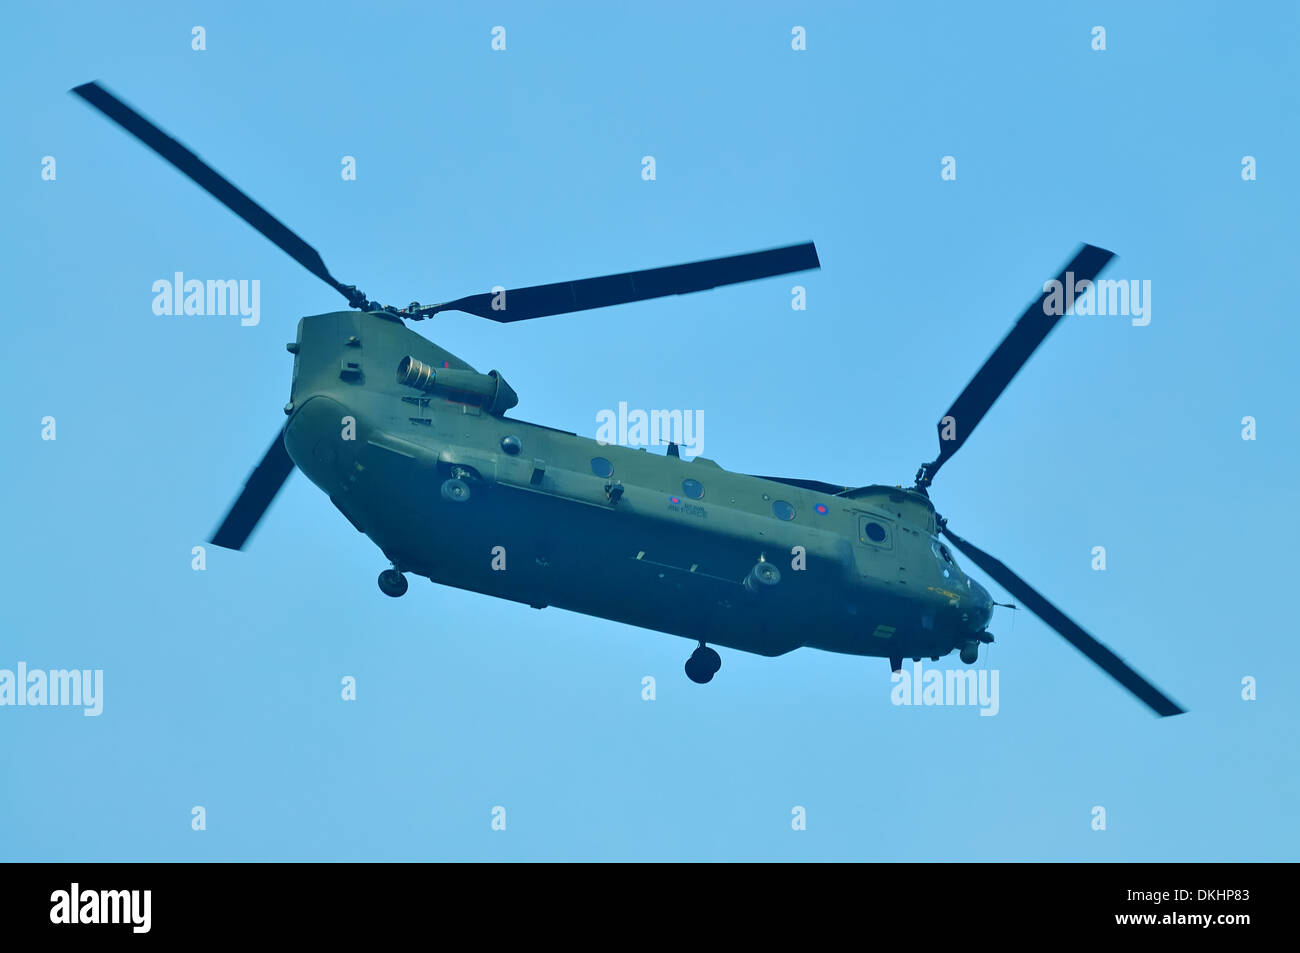 RAF Boeing Chinook HC2 heavy lift helicopter - Stock Image